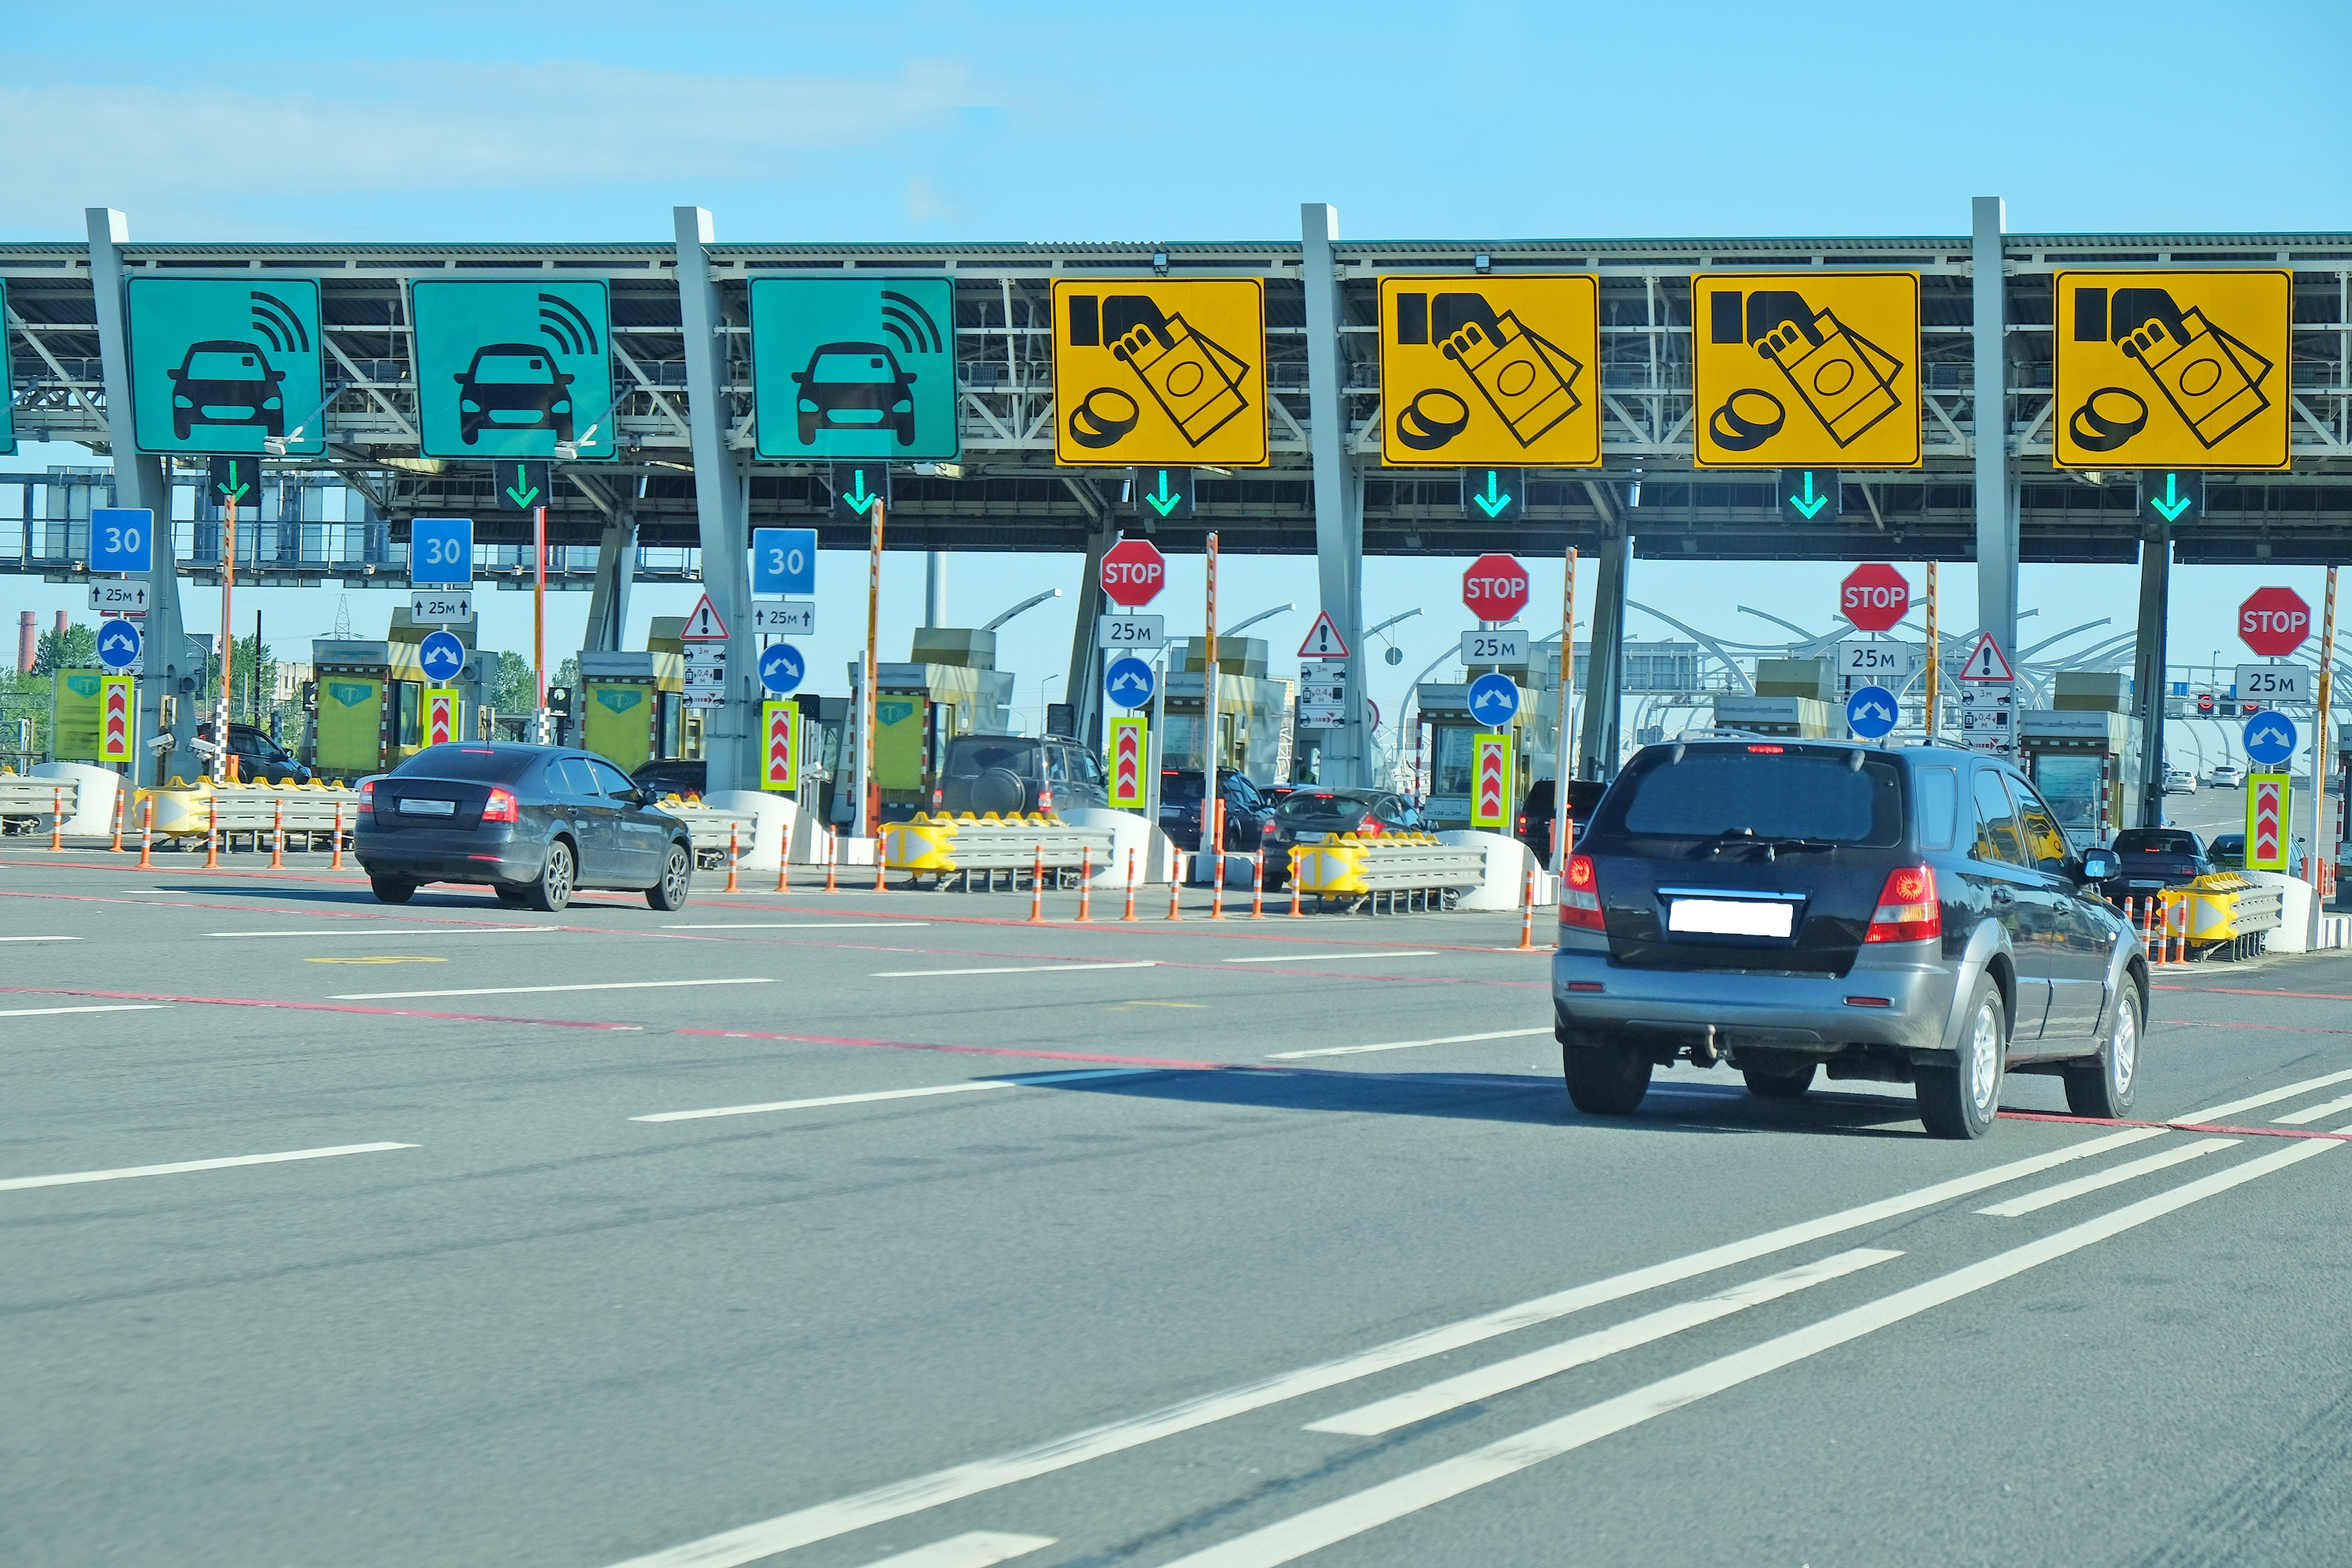 Highway Tolling Technology Trends report free download Silicon Valley Research Group Market Research